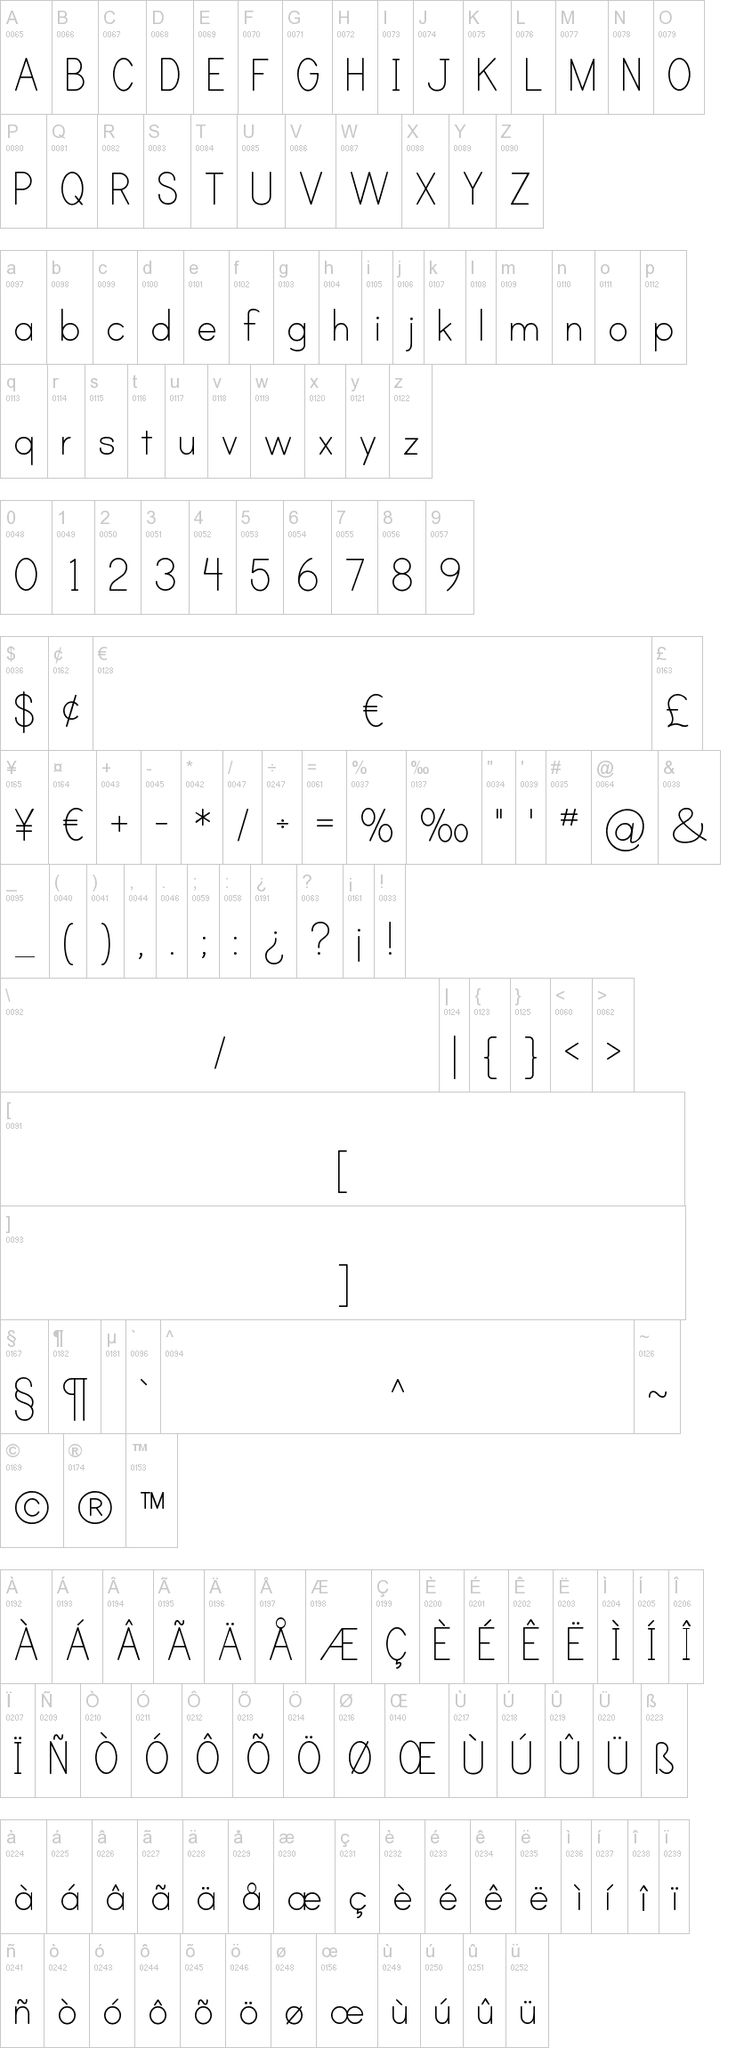 A free downloadable font with dashed lines to make your